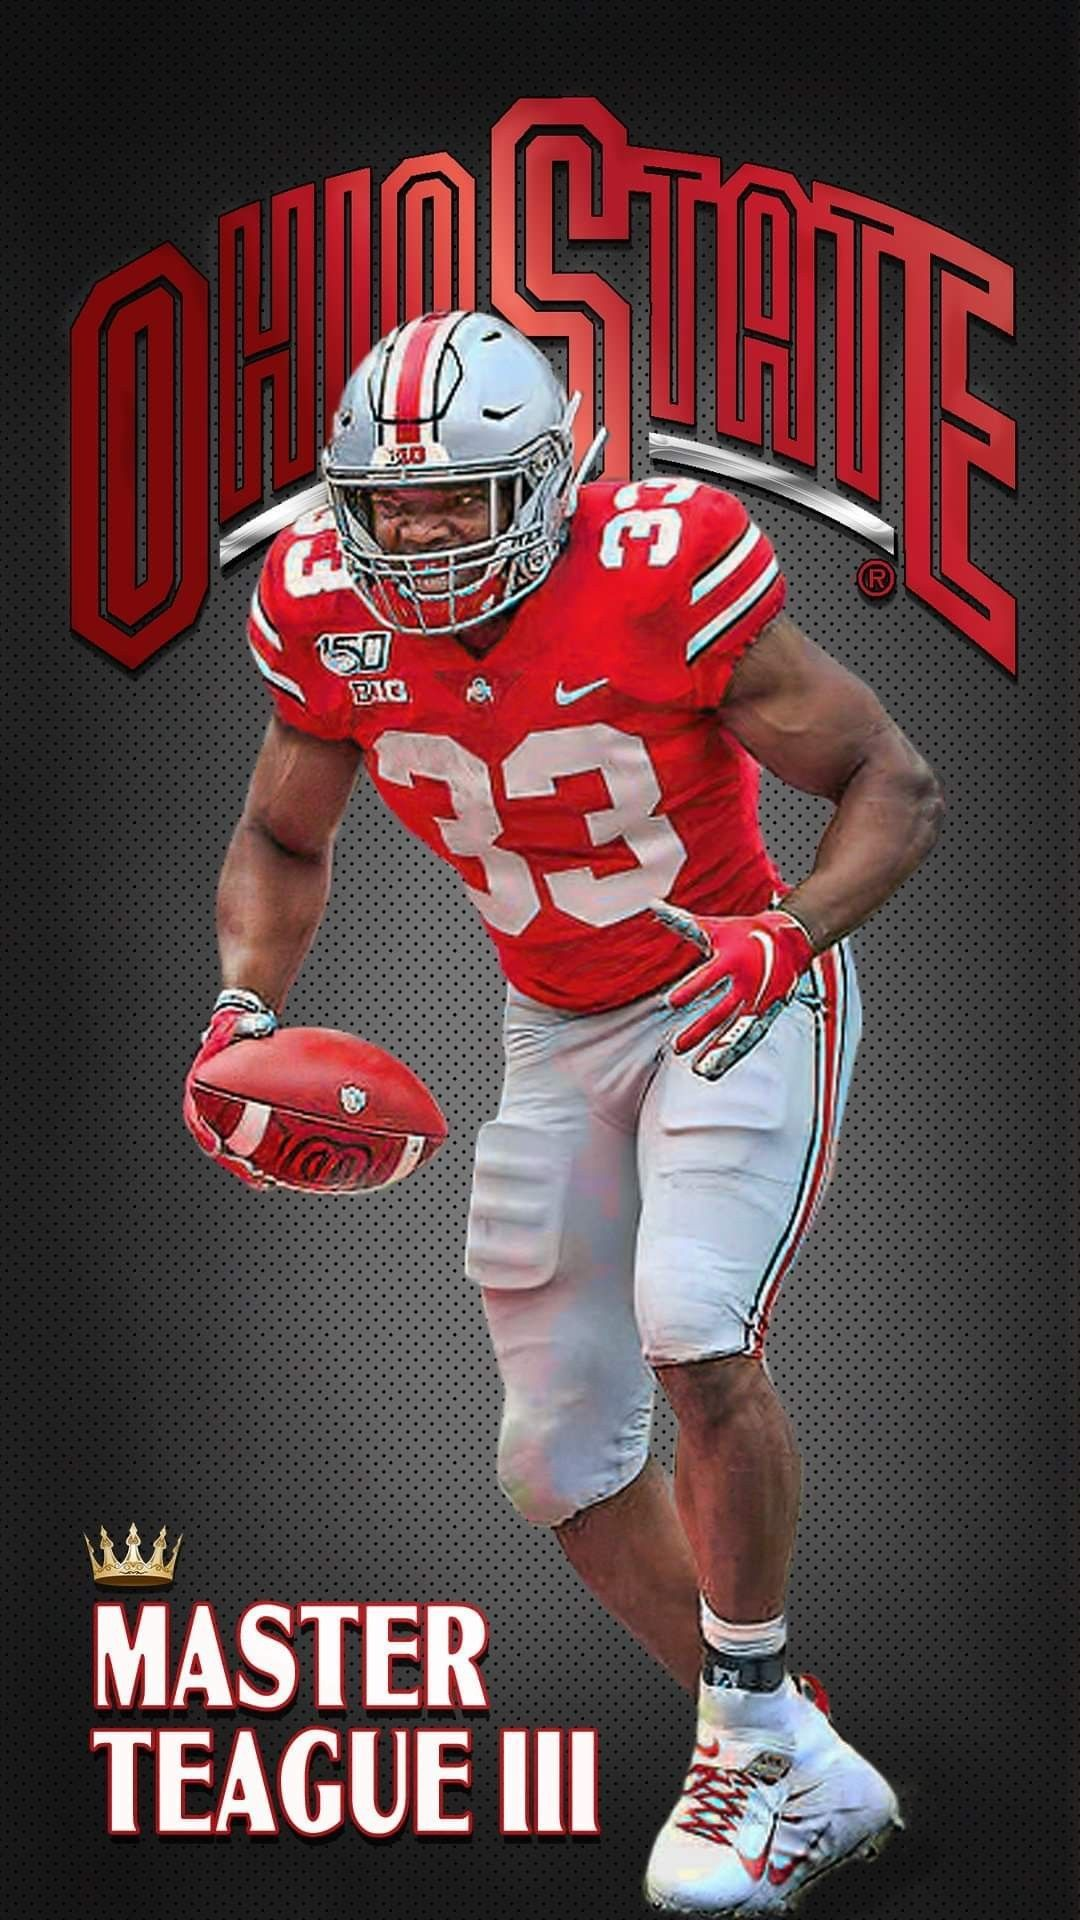 Ohio State Football Chase Young Wallpaper Http Wallpapersalbum Com Ohio State Footb In 2020 Ohio State Football Ohio State Buckeyes Football Ohio State Buckeyes Baby